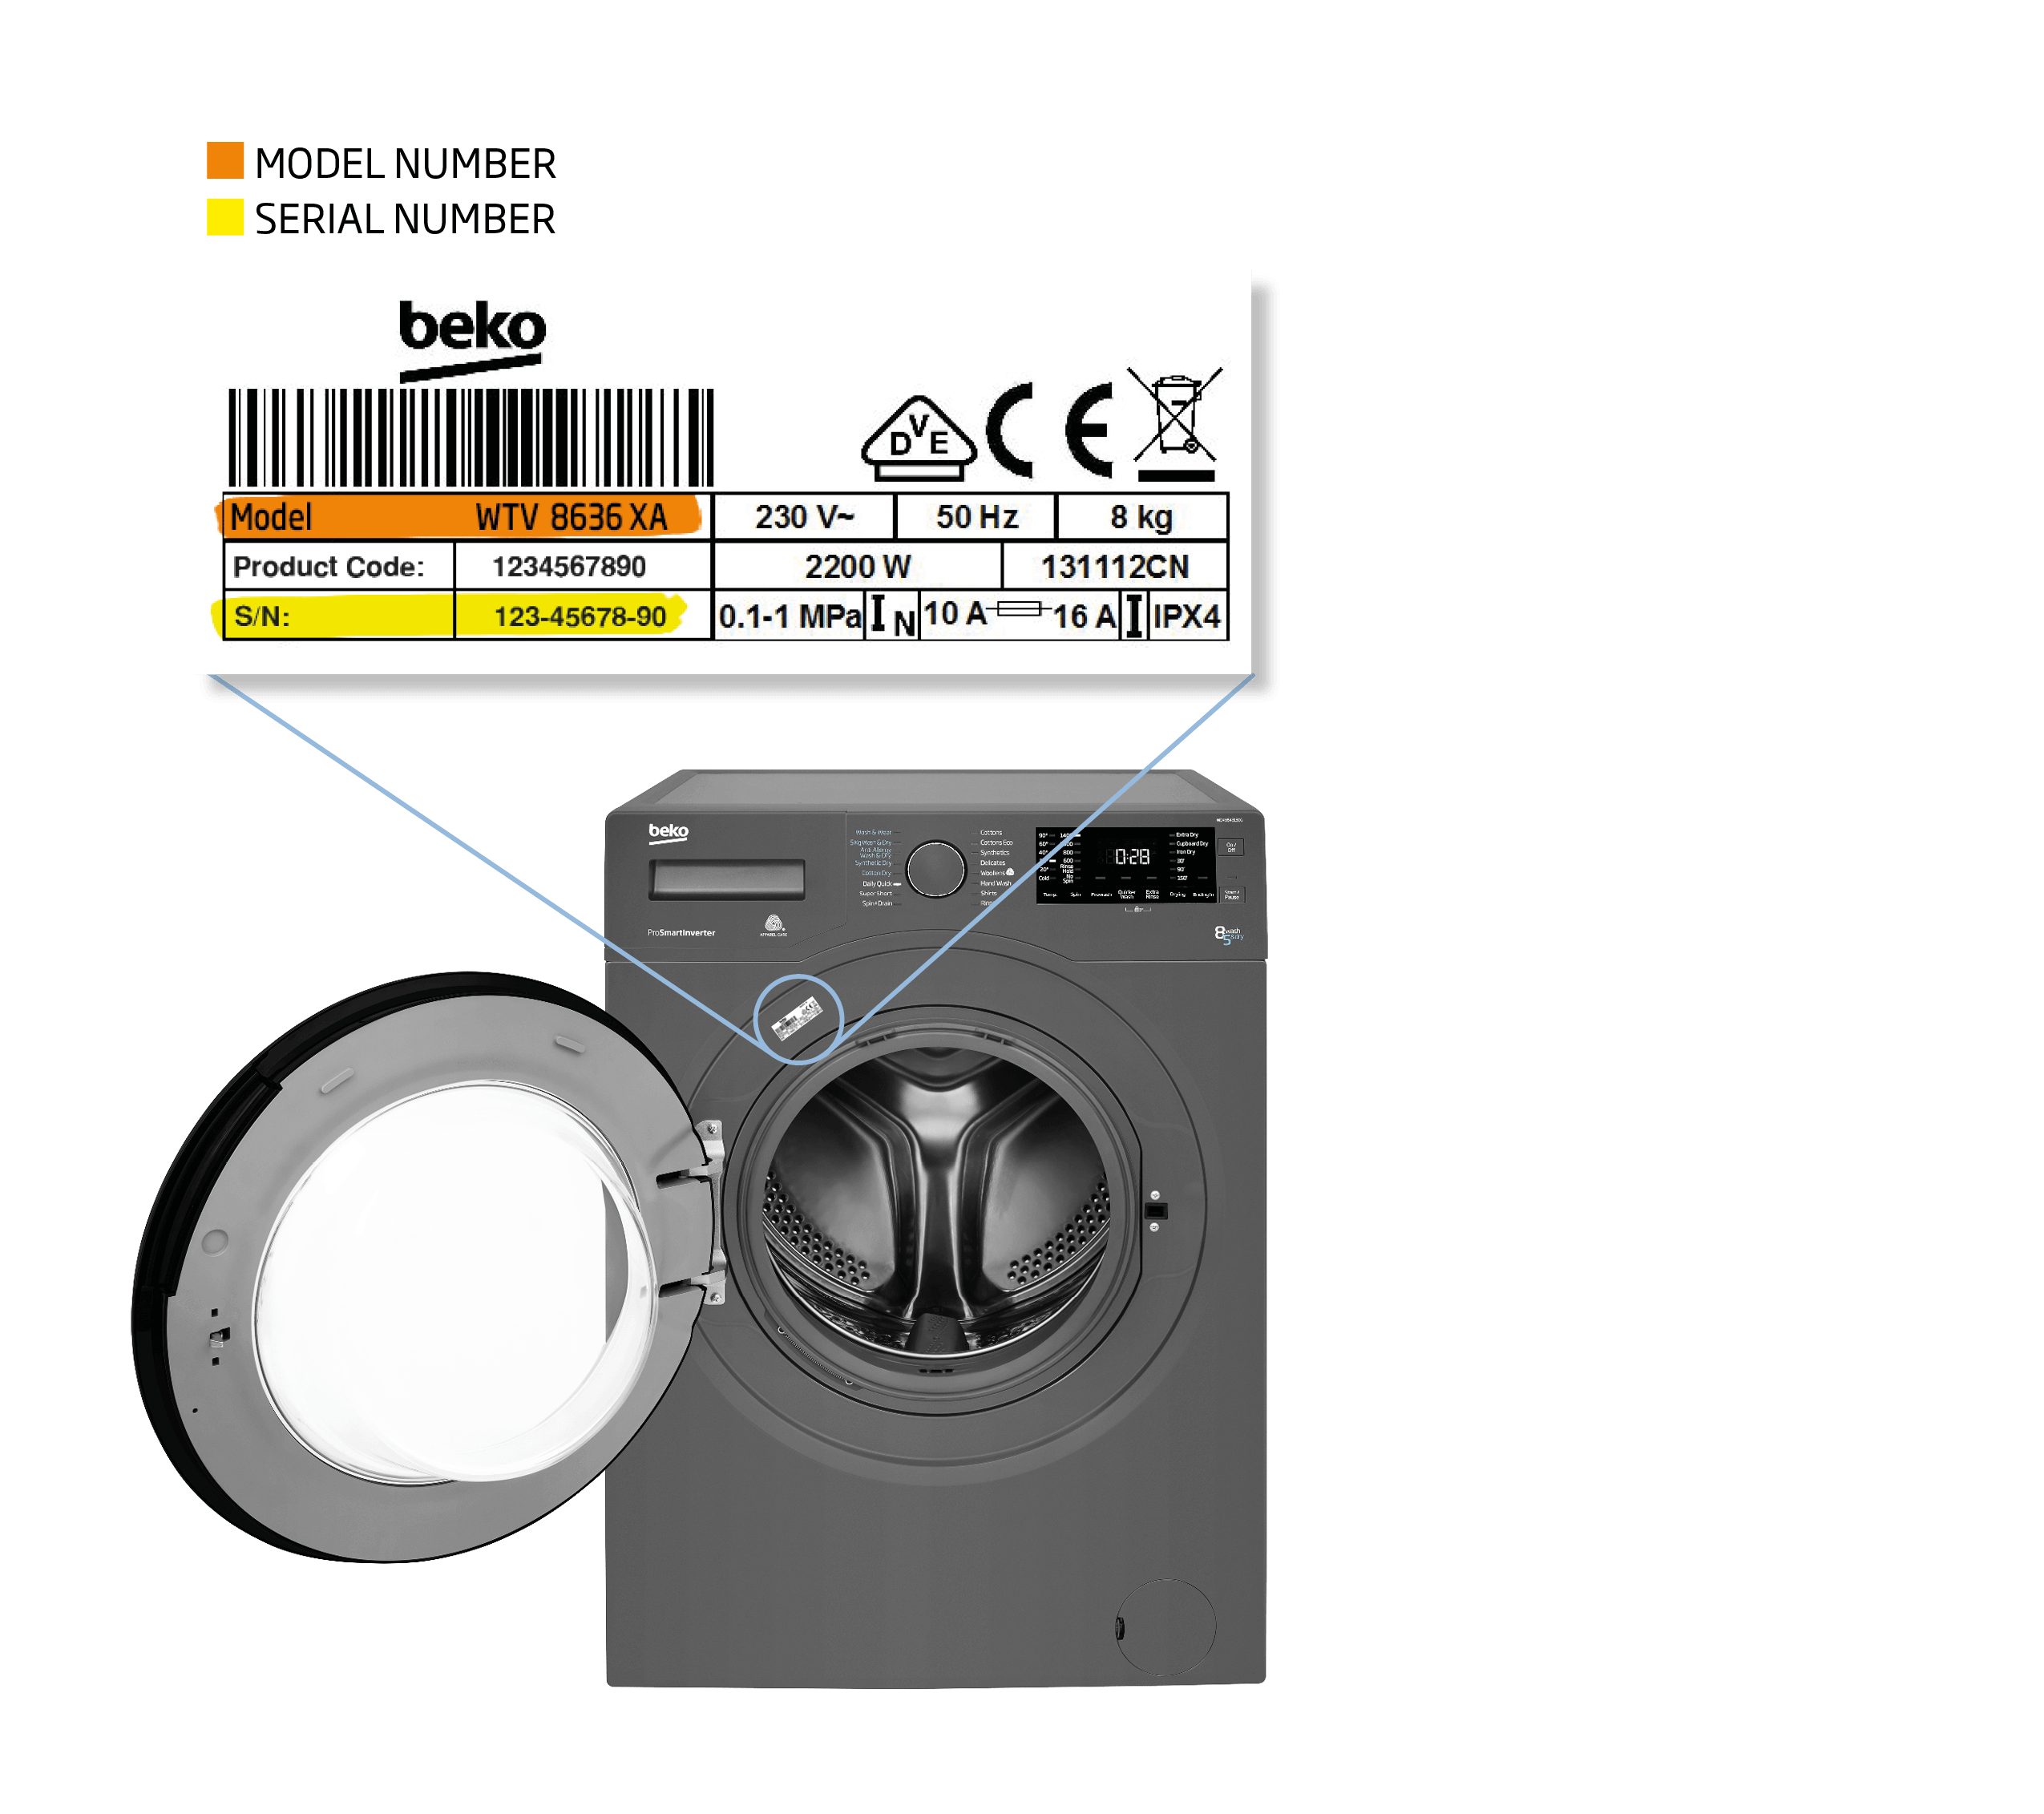 washer dryer model number